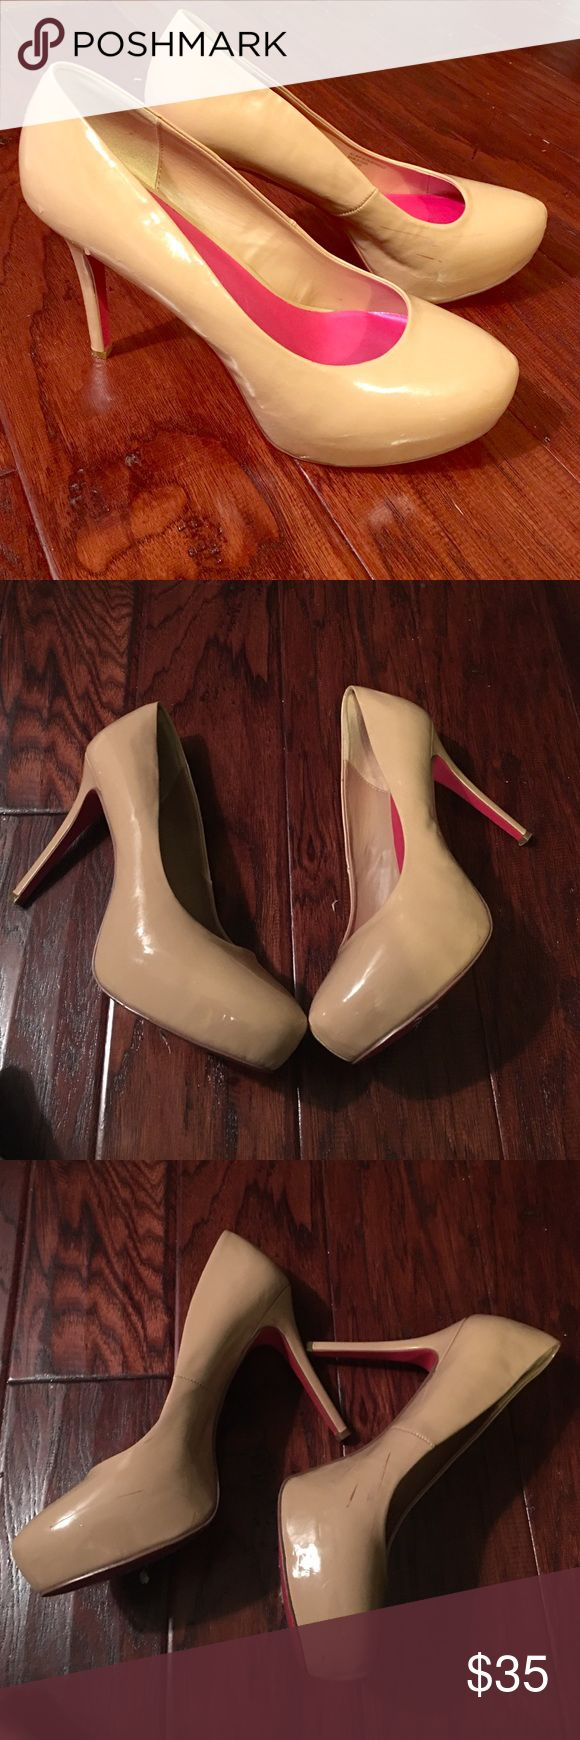 Fergie Nude Pump Nude Patent platform pump...only worn once (minor scuff on inside.. see last photo) Fergie Shoes Platforms